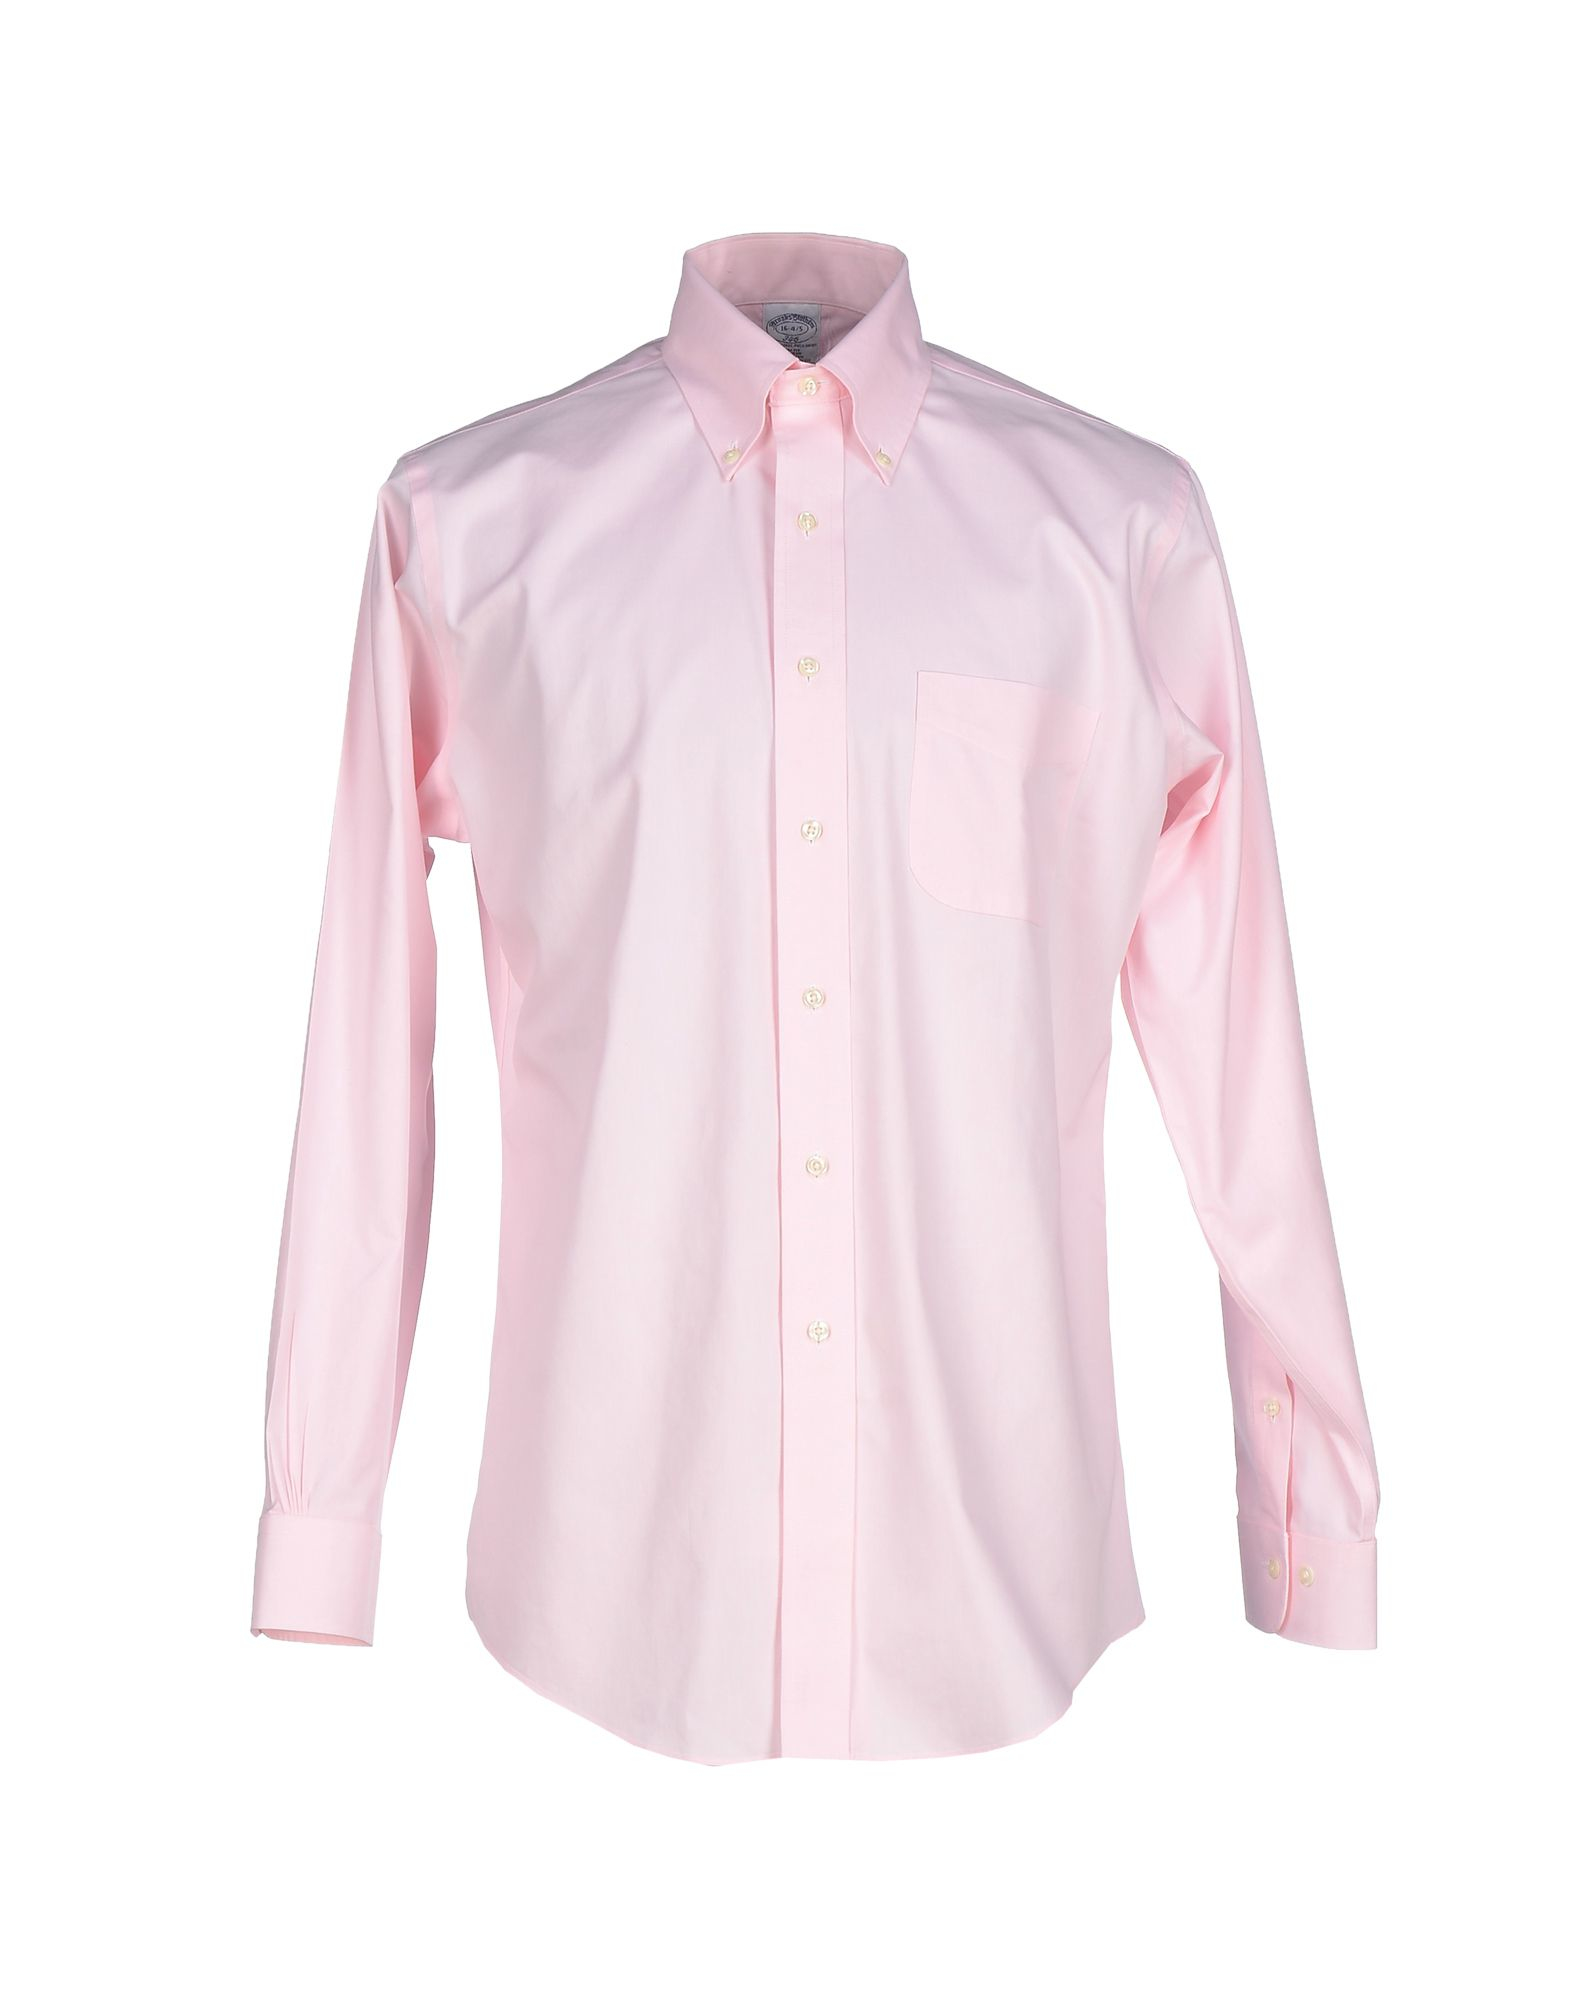 Brooks brothers shirt in pink for men lyst Brooks brothers shirt size guide